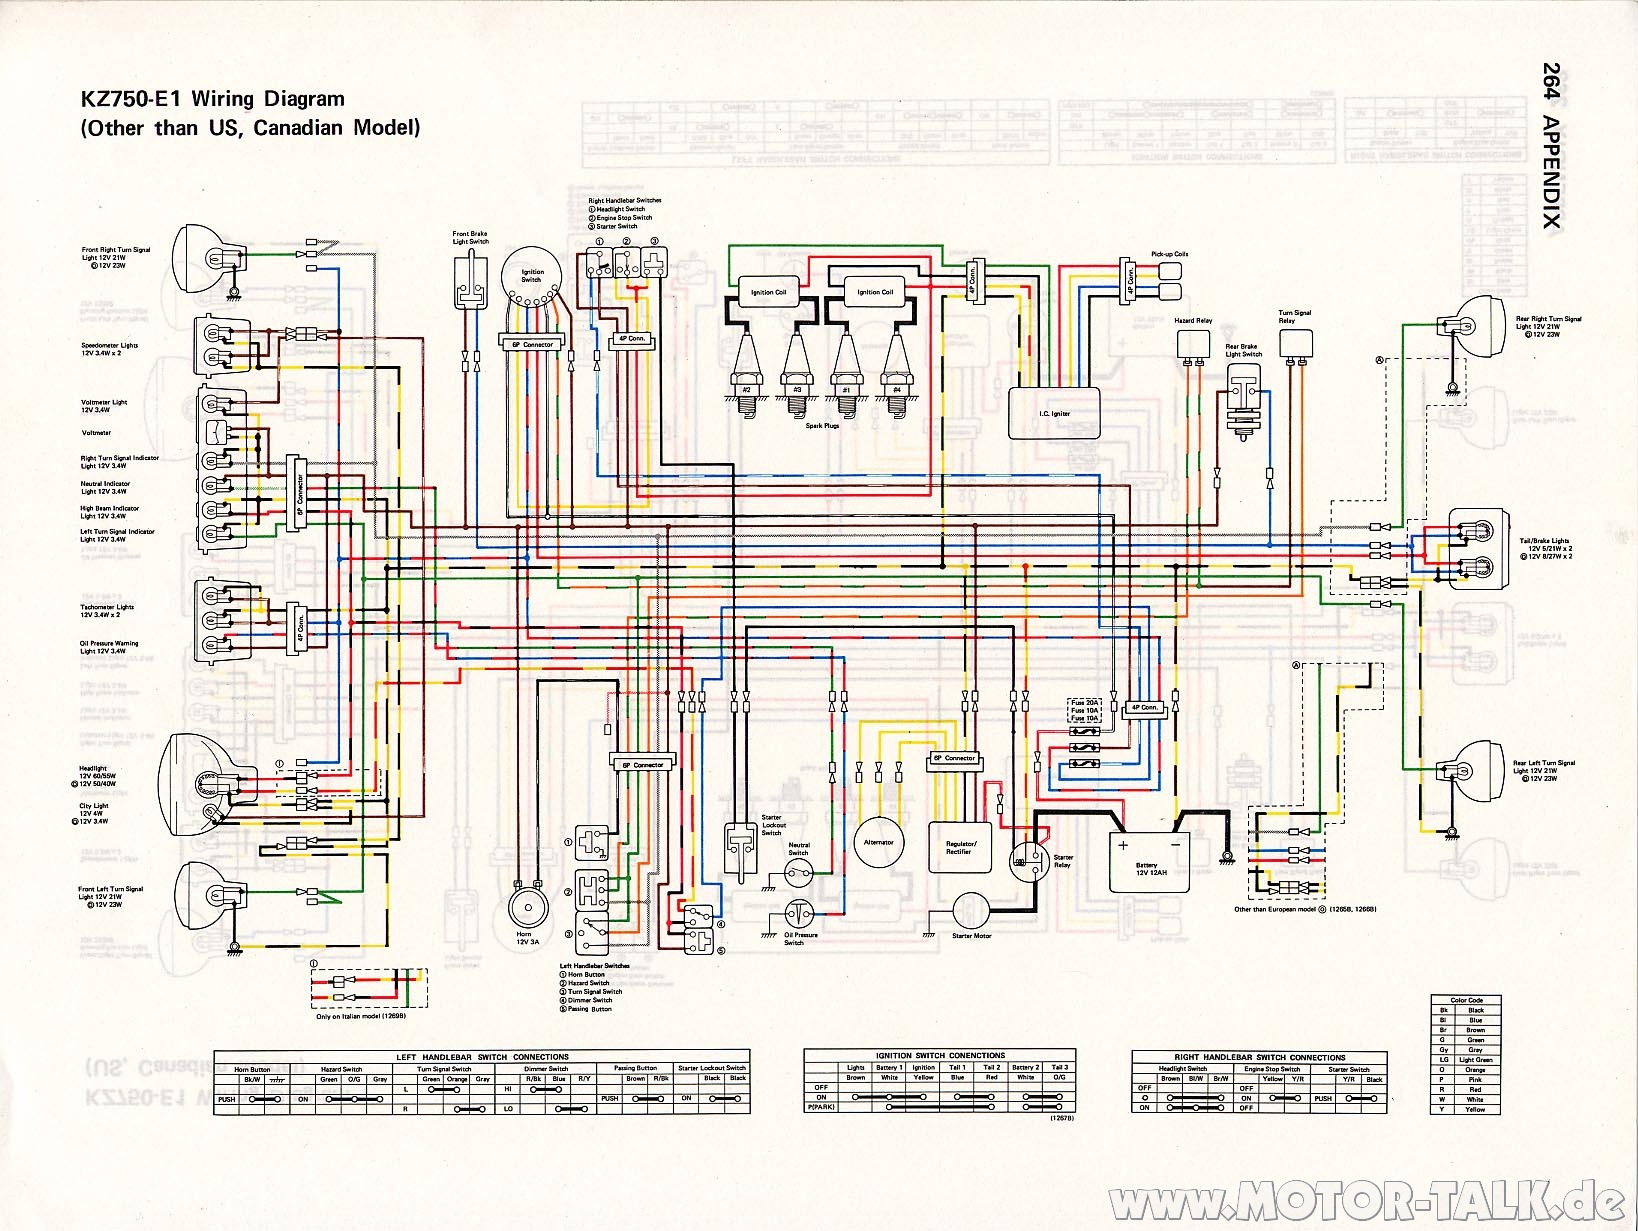 2002 Ducati 900 Wiring Diagram Electrical Diagrams 996 Trusted Two Stroke